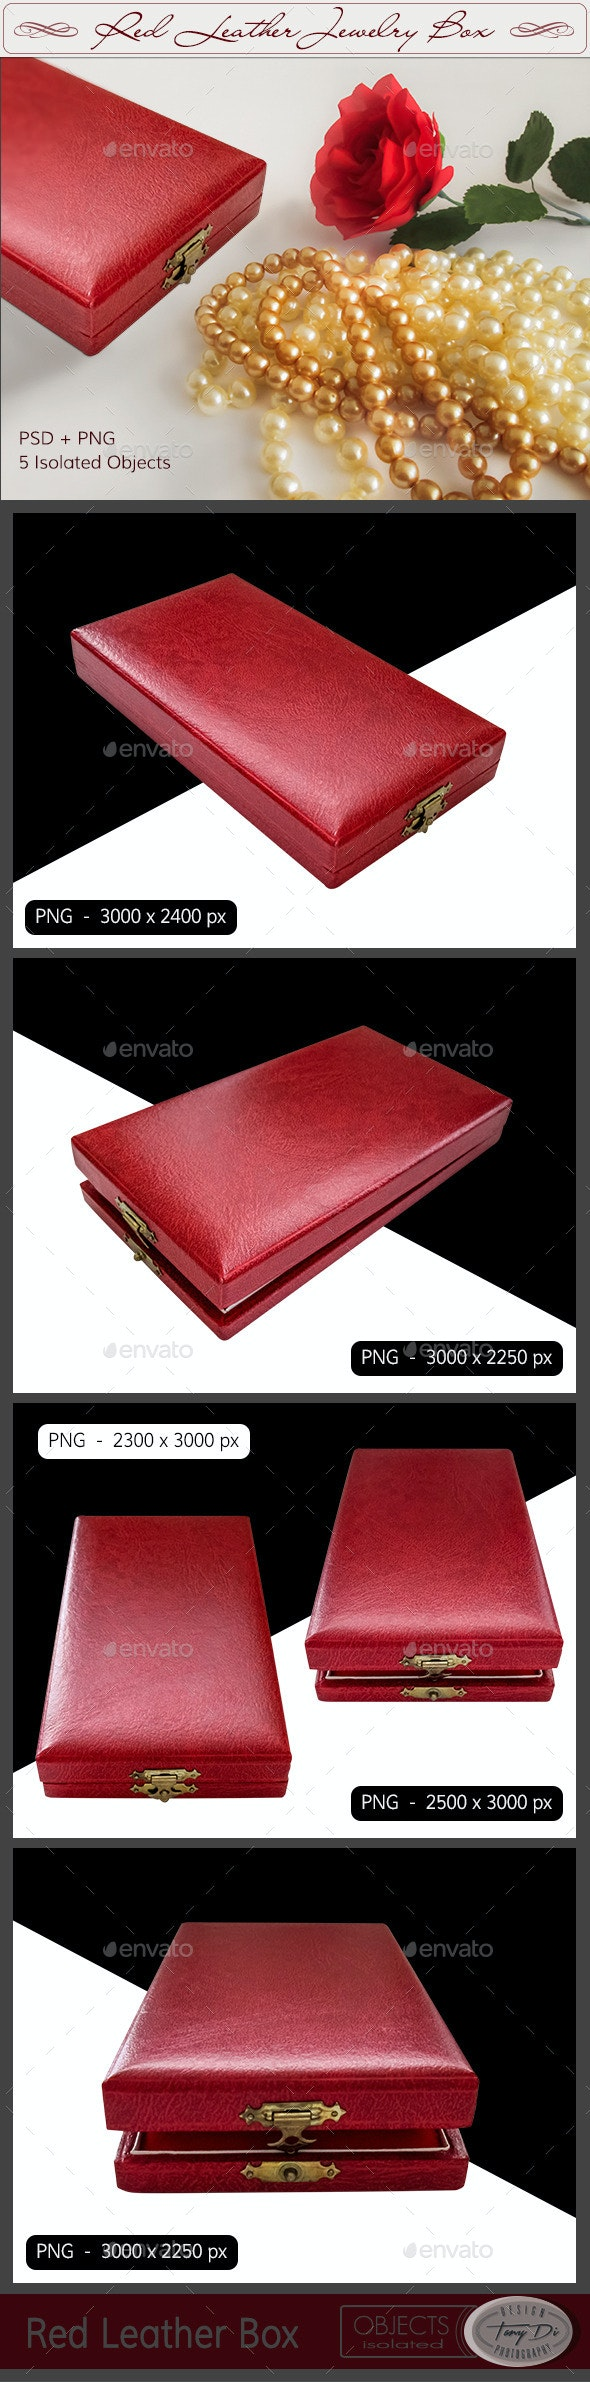 Red Leather Jewelry Box - Clothes & Accessories Isolated Objects